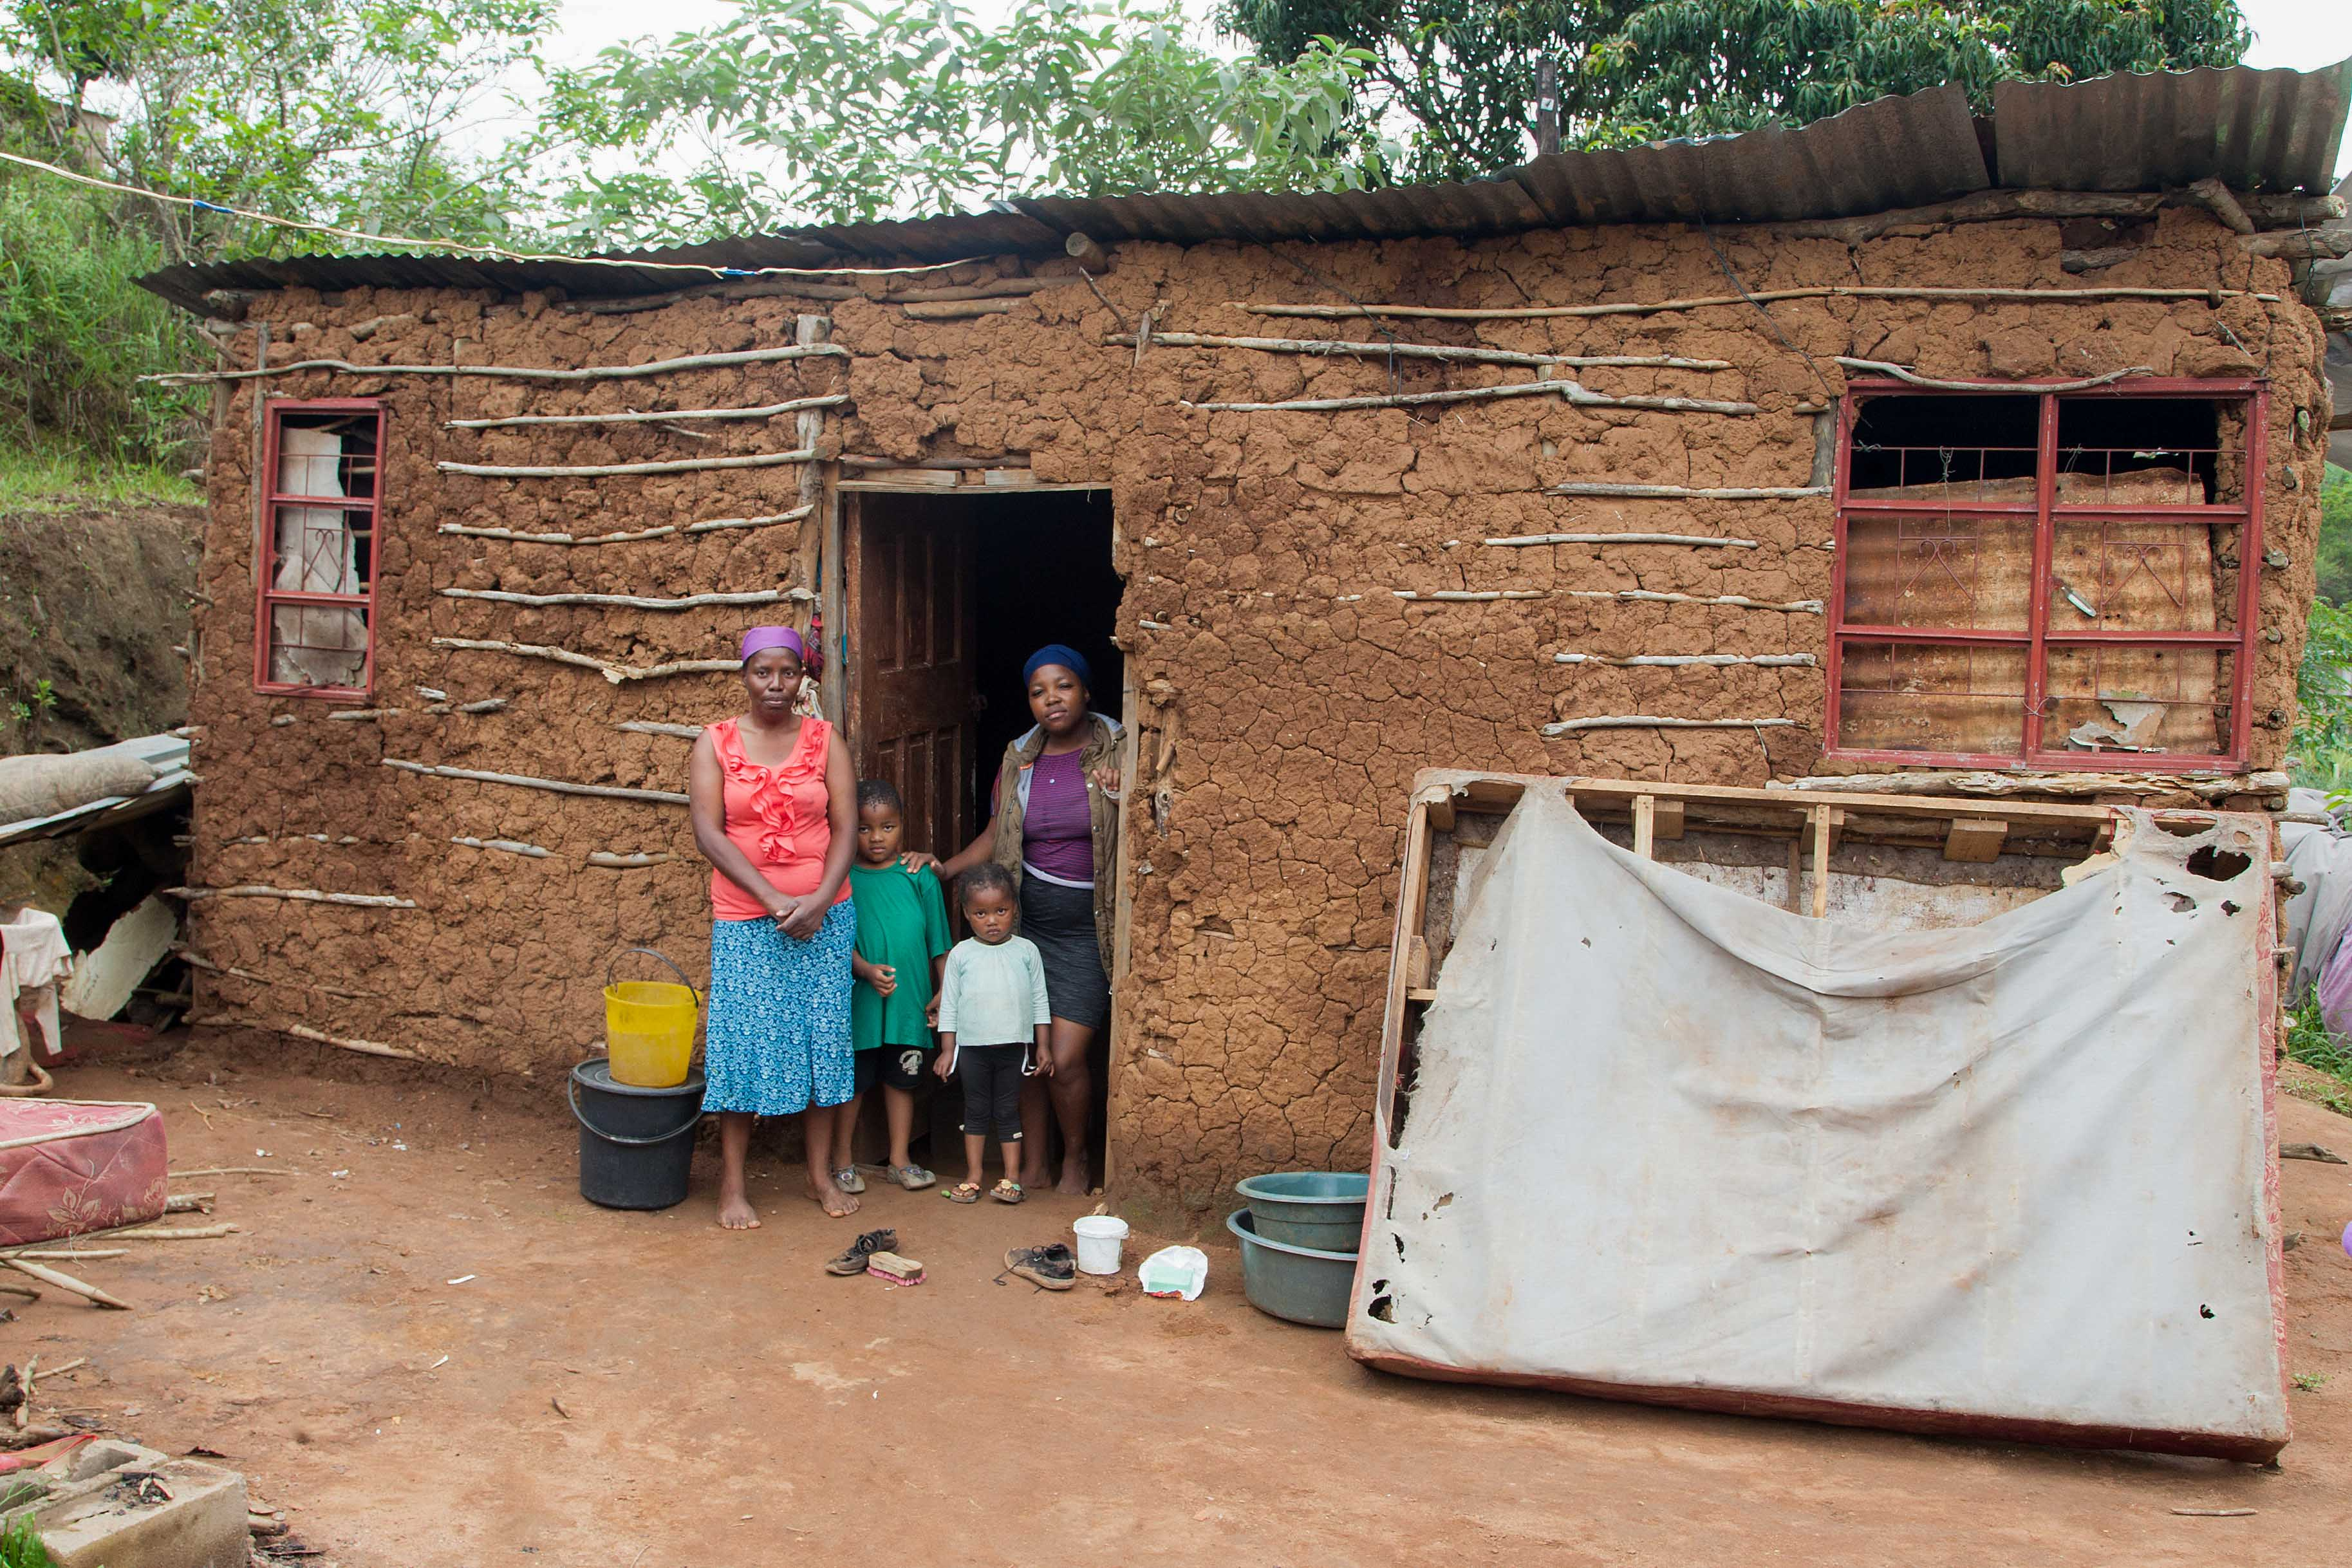 16 November 2019: Philisiwe Dube at home with her daughter, Londiwe, and grandchildren, Esihle and Enzokuhle. Their mud house in Ndwedwe, KwaZulu-Natal, is still waterlogged.